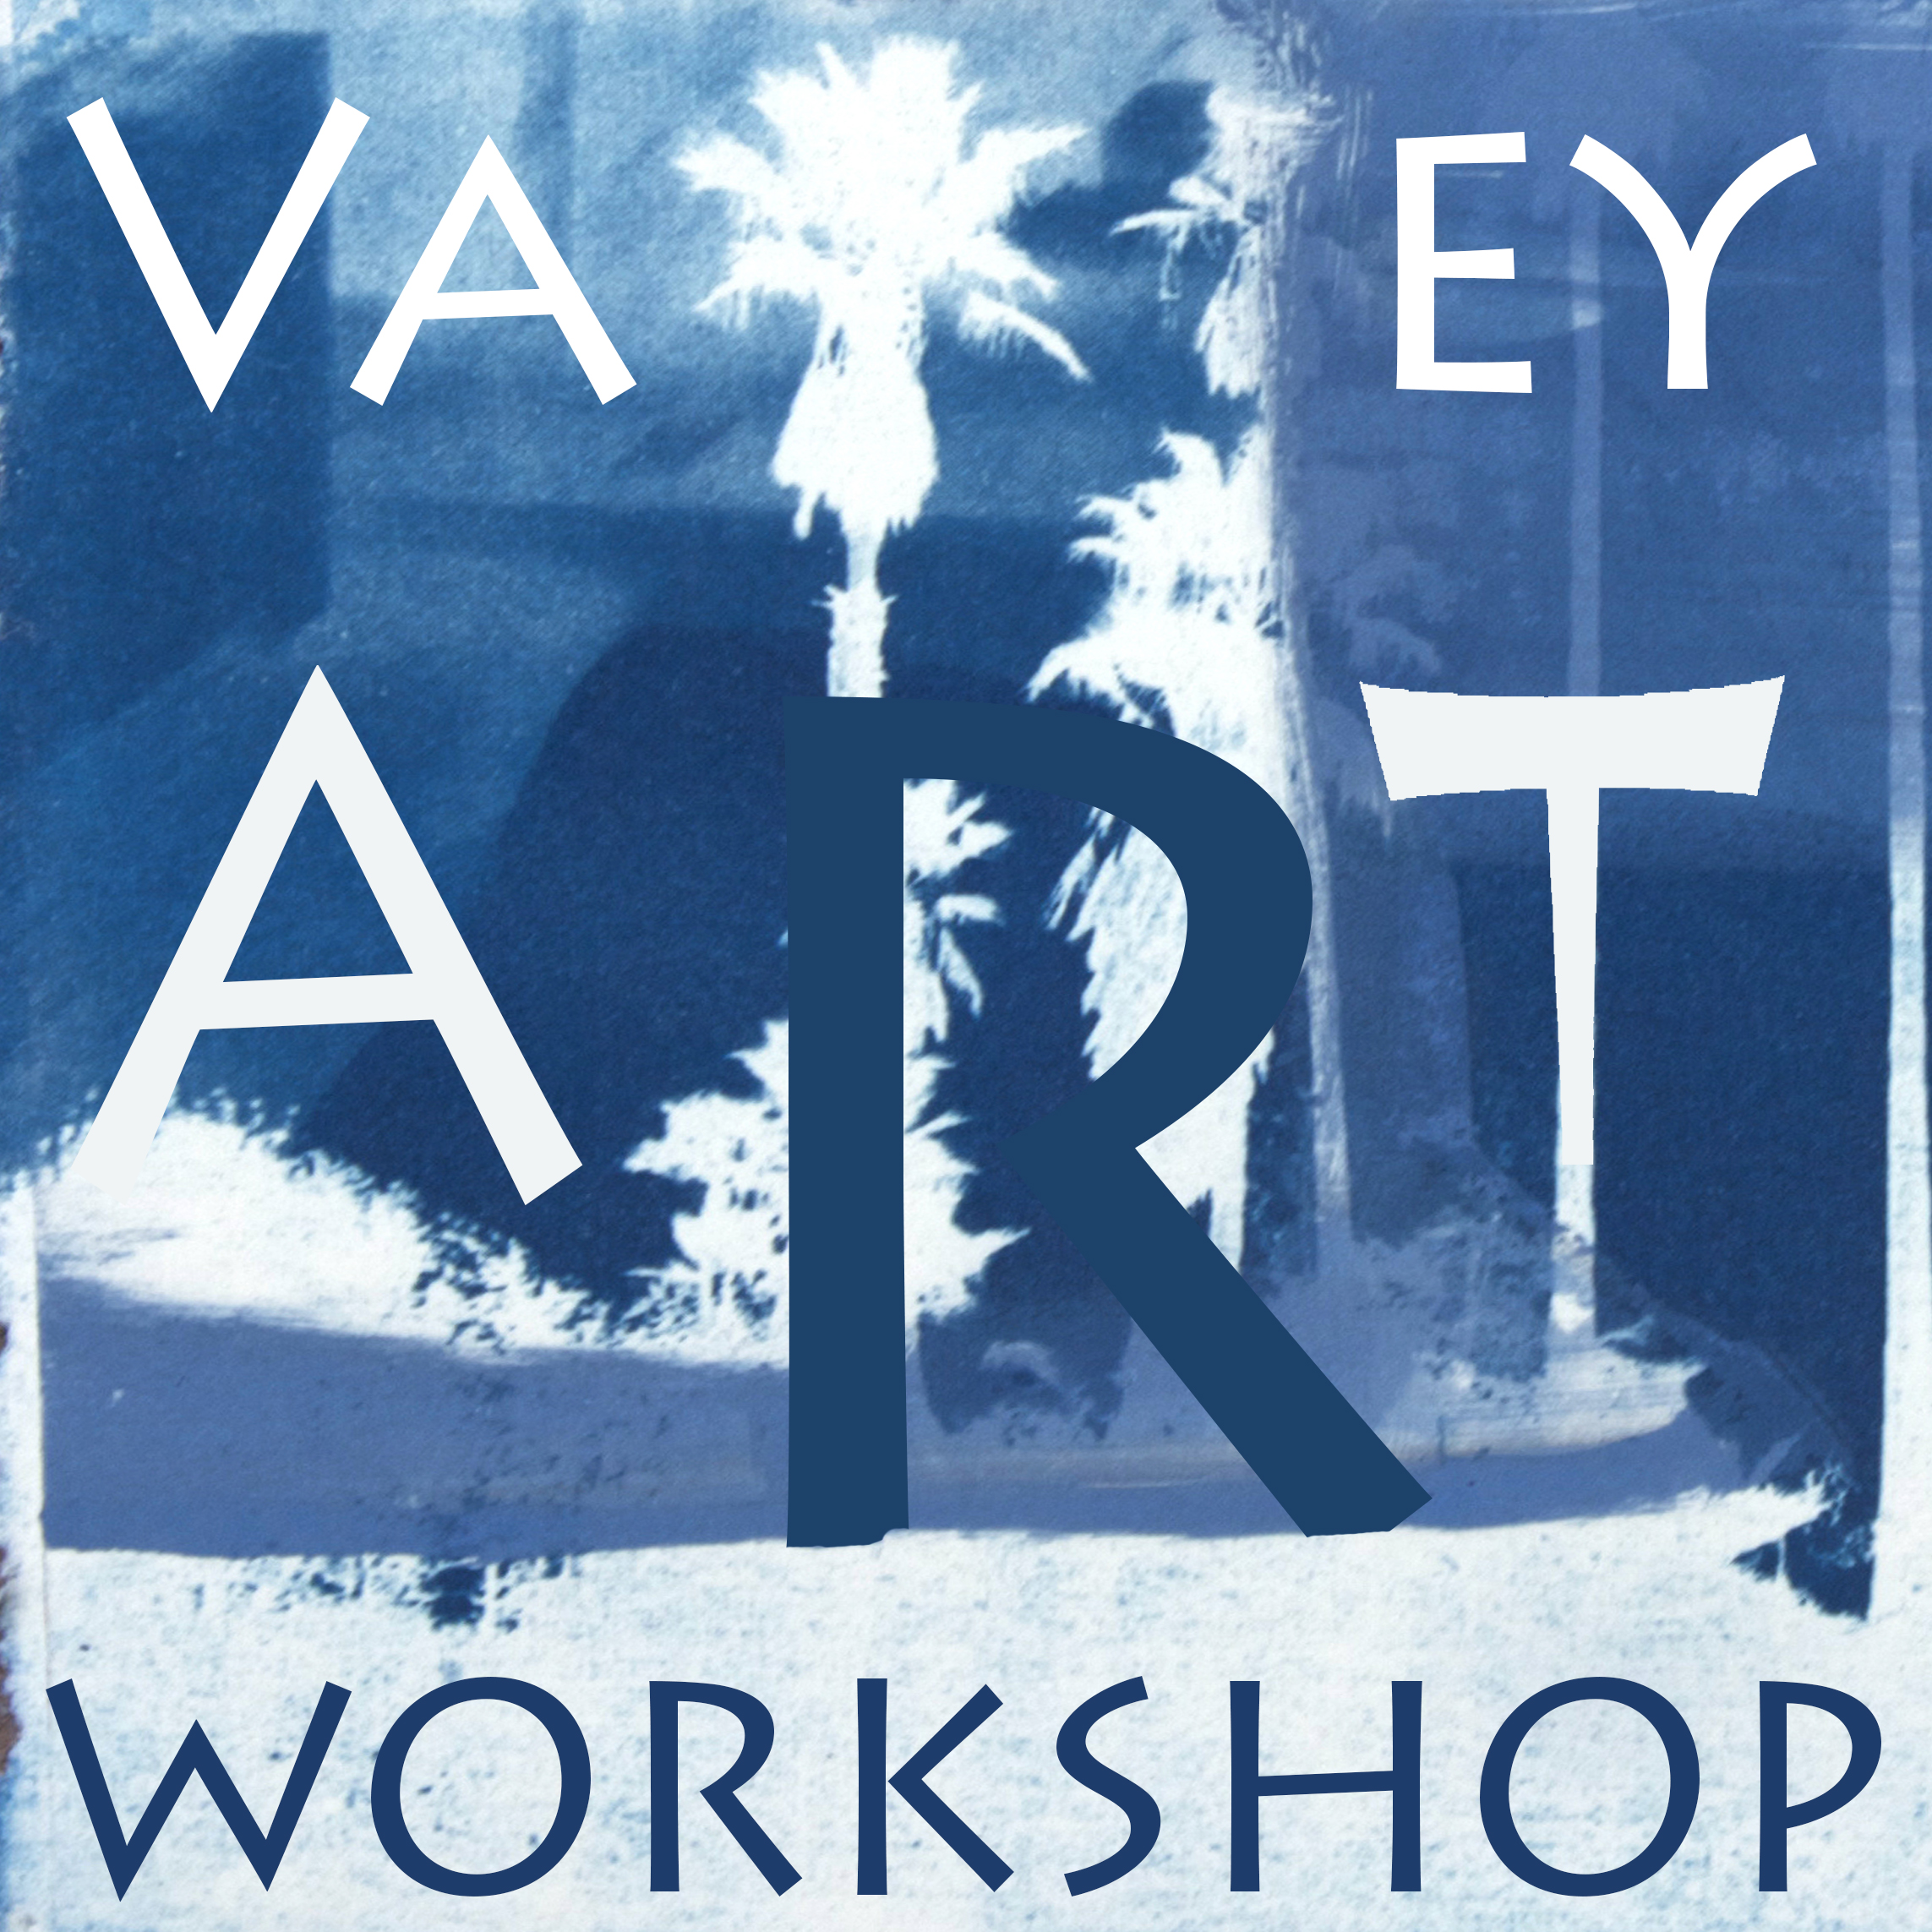 ValleyArtWorkshopLogo.jpg